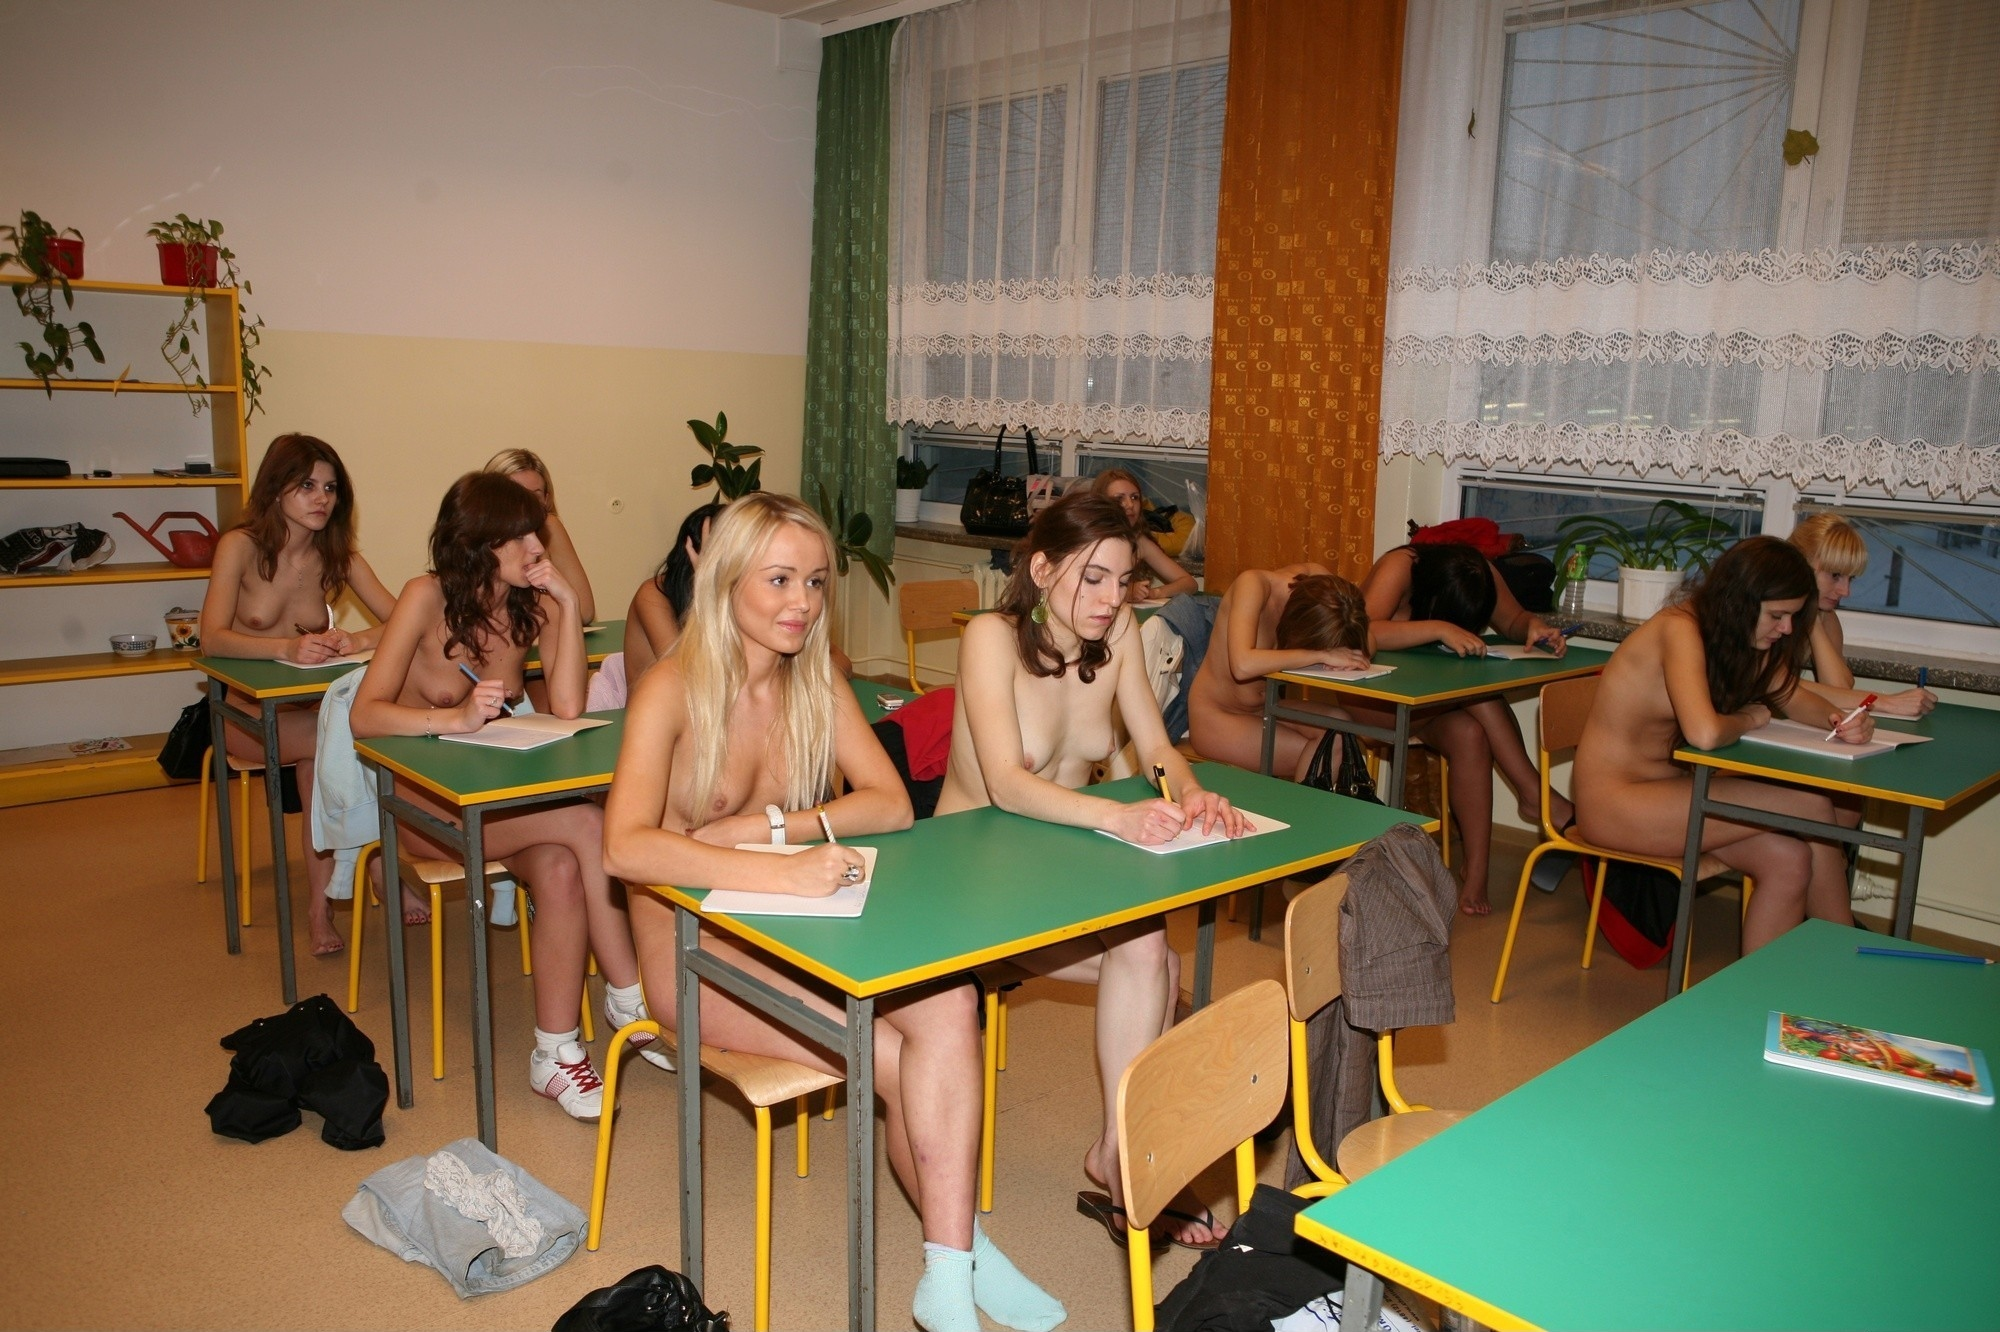 nudist high school lesson the parts of body 05 redbust